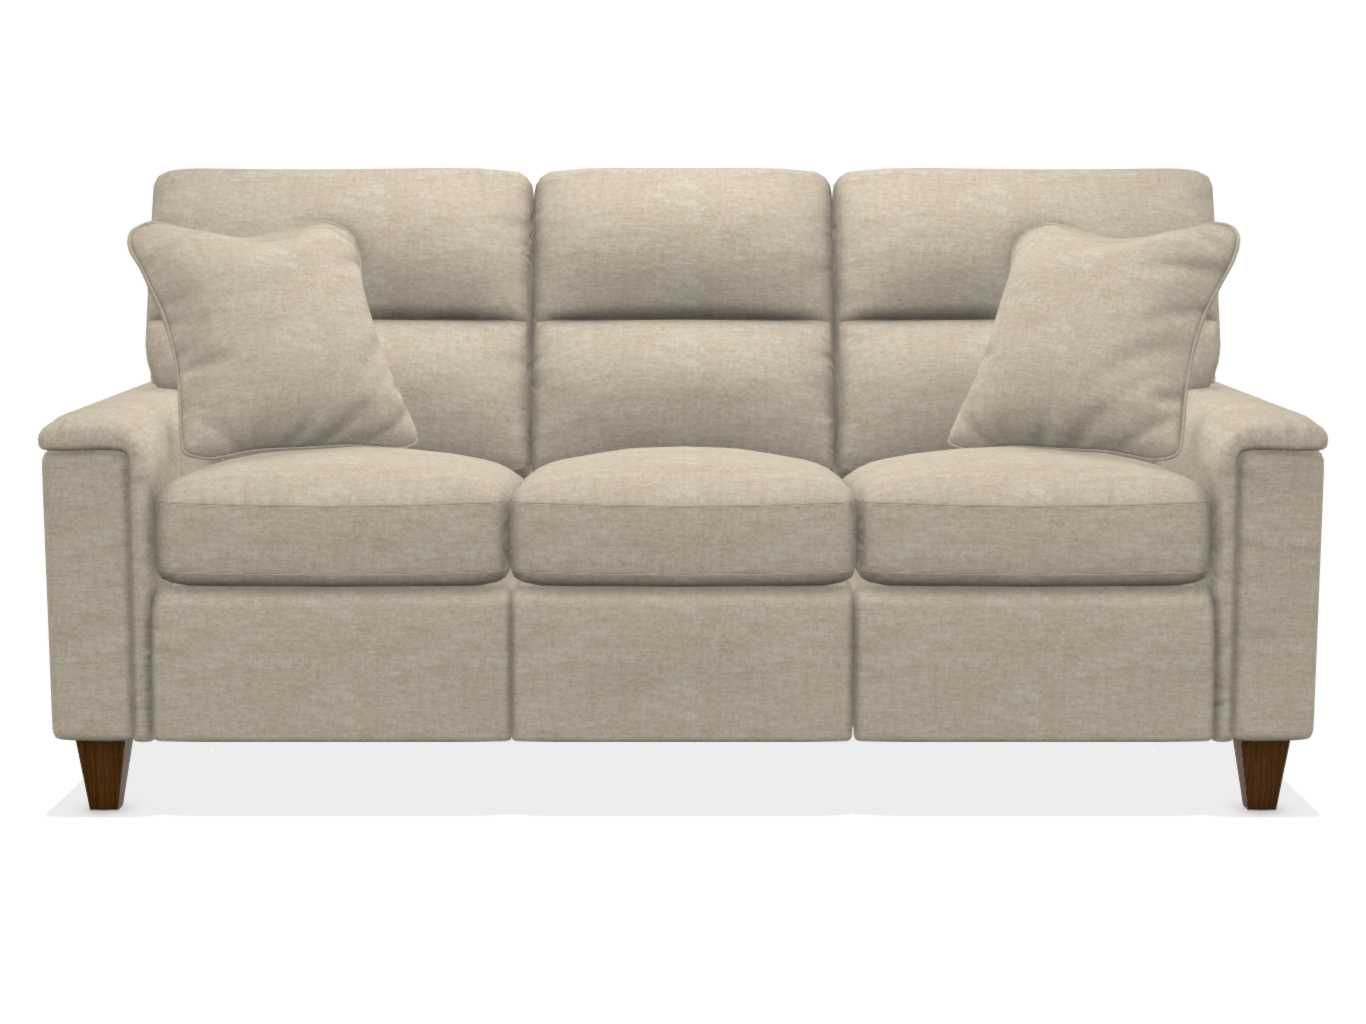 Ryder Duo Reclining Sofa Reclining Sofa Reclining Sofa Living Room Leather Reclining Sofa